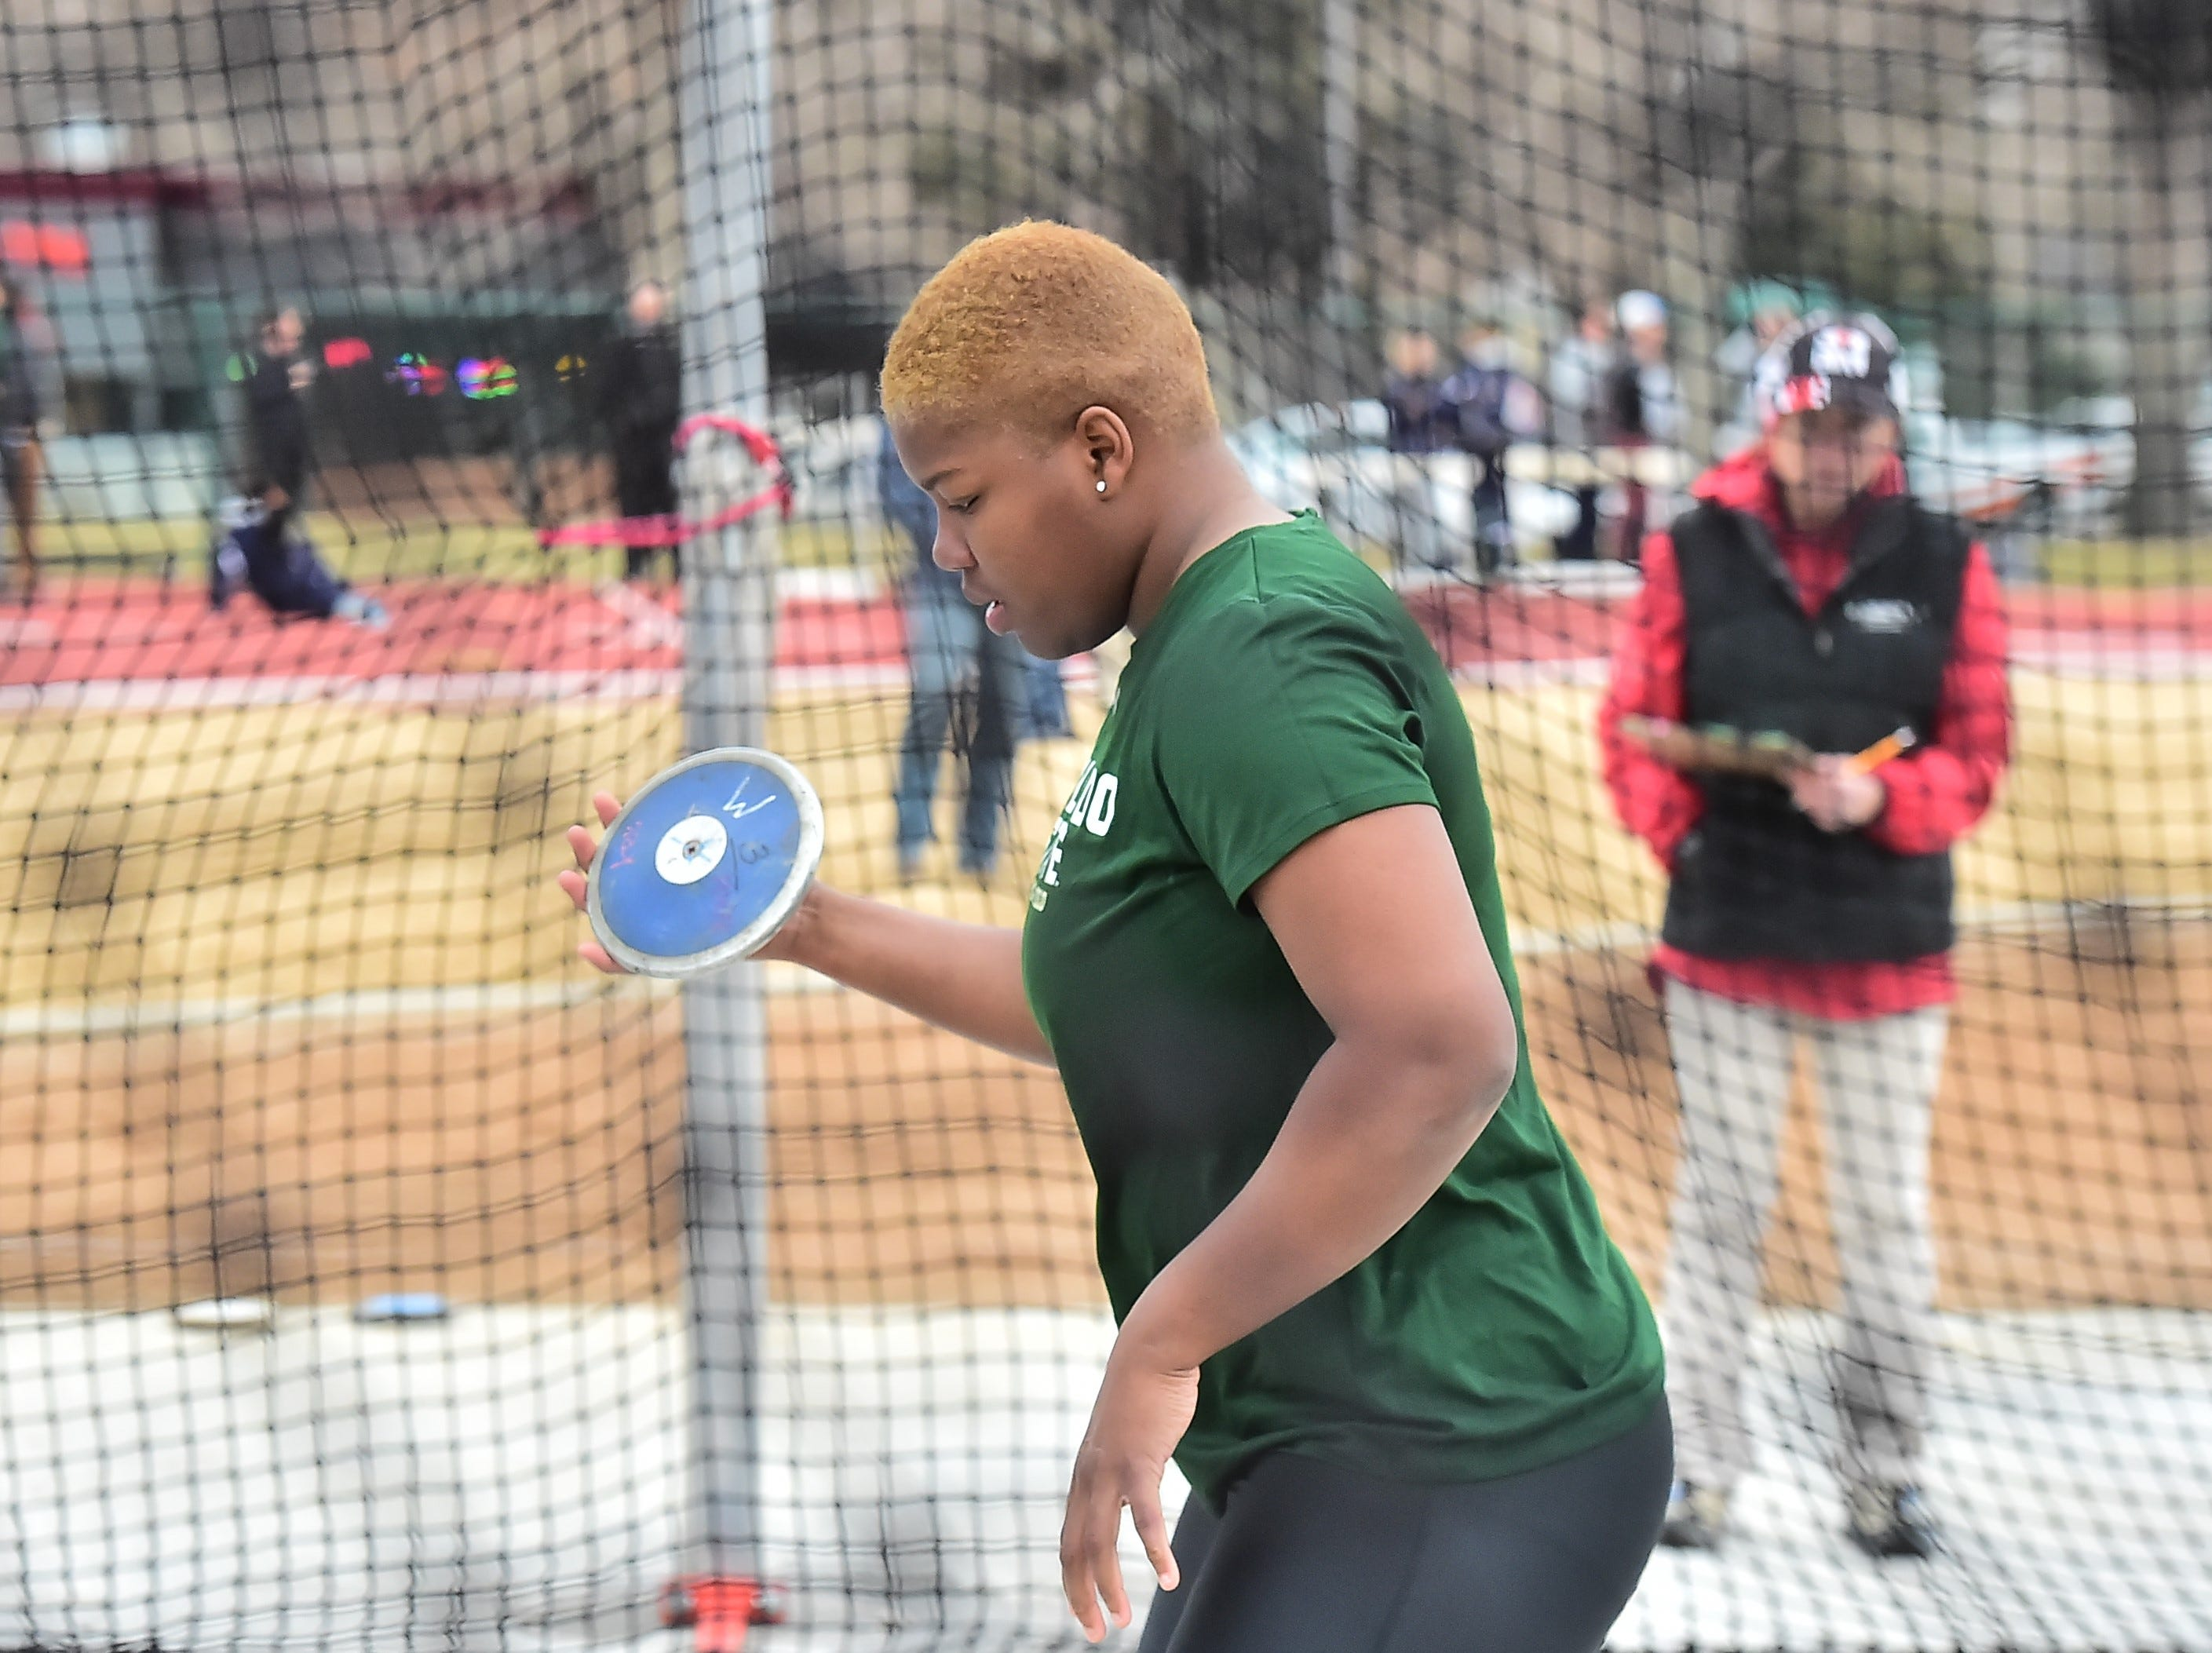 CSU's Shadae Lawrence, a transfer from Kansas State and the defending NCAA champion, prepares to throw the discus Saturday, March 23, 2019, in the Fum McGraw Open at Jack Christiansen Track.